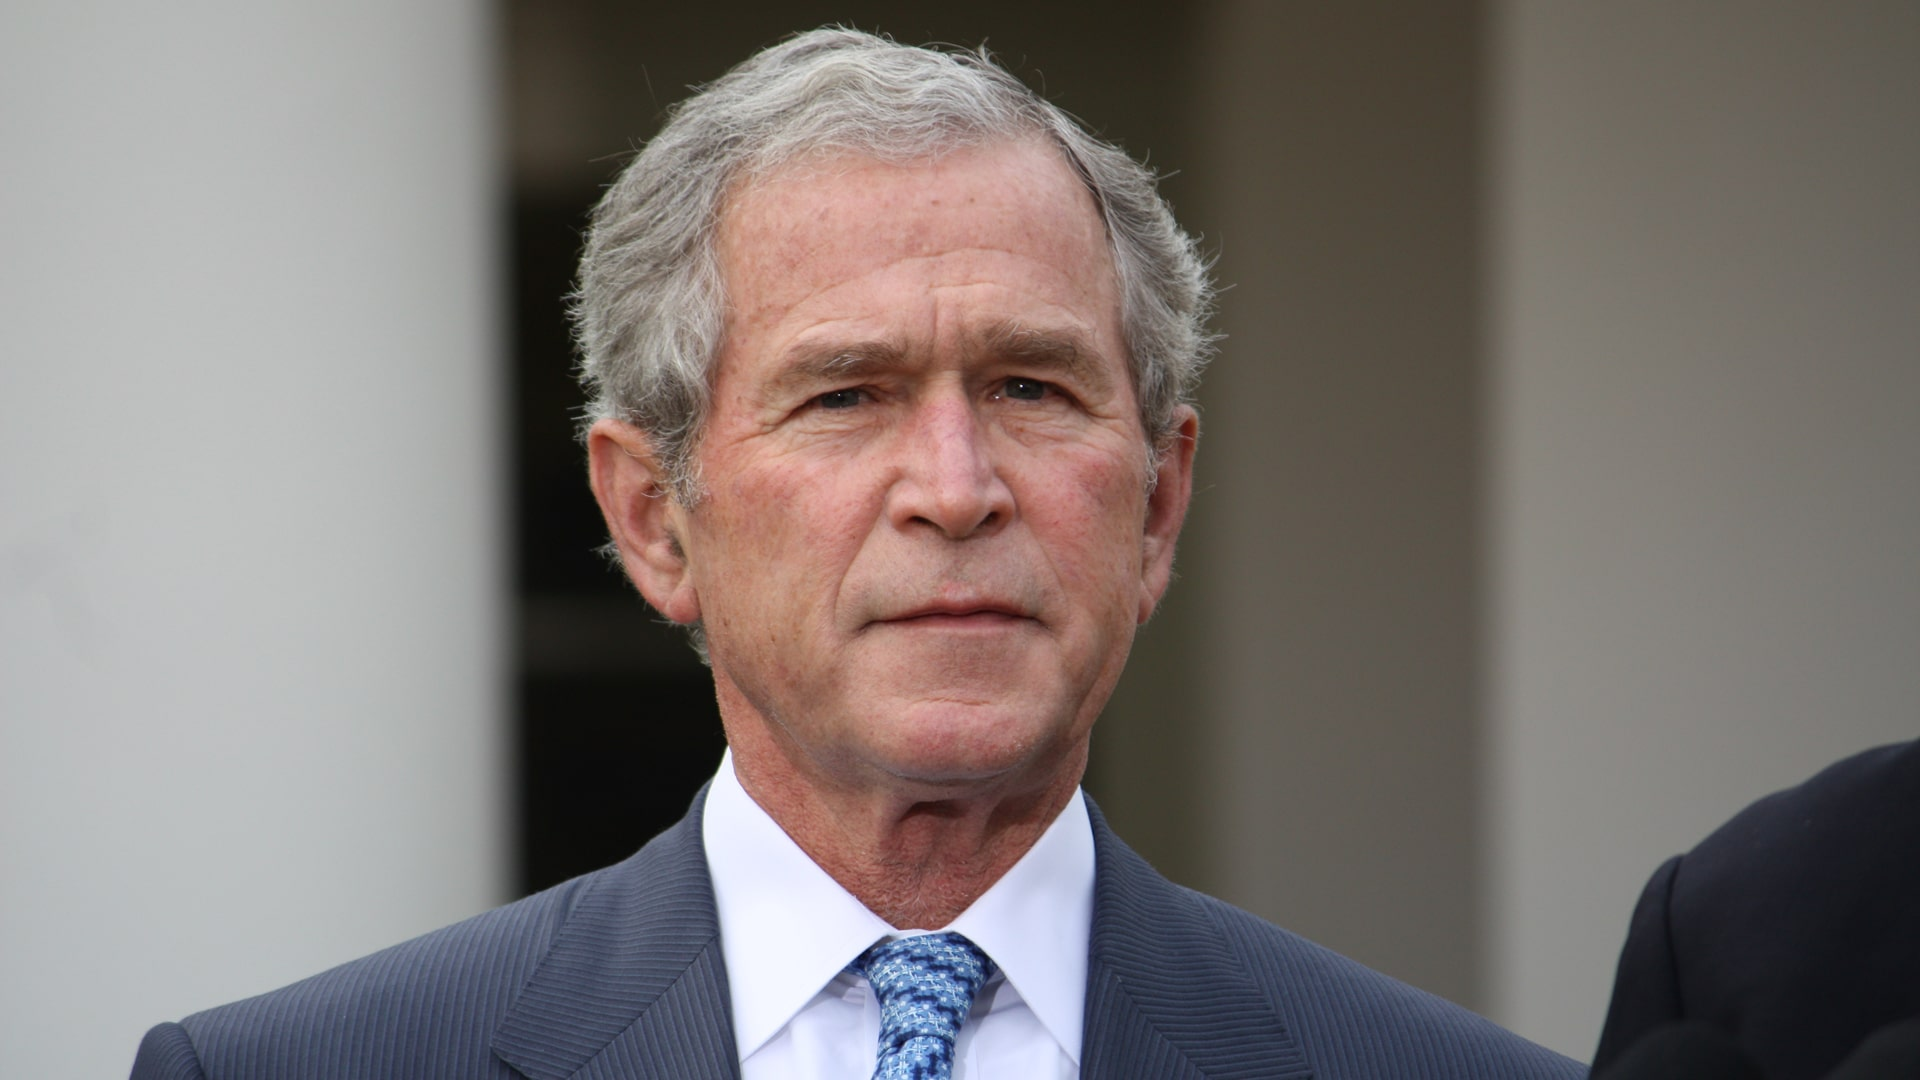 George W Bush Net Worth, Bio 2017-2016, Wiki - REVISED! - Richest ...